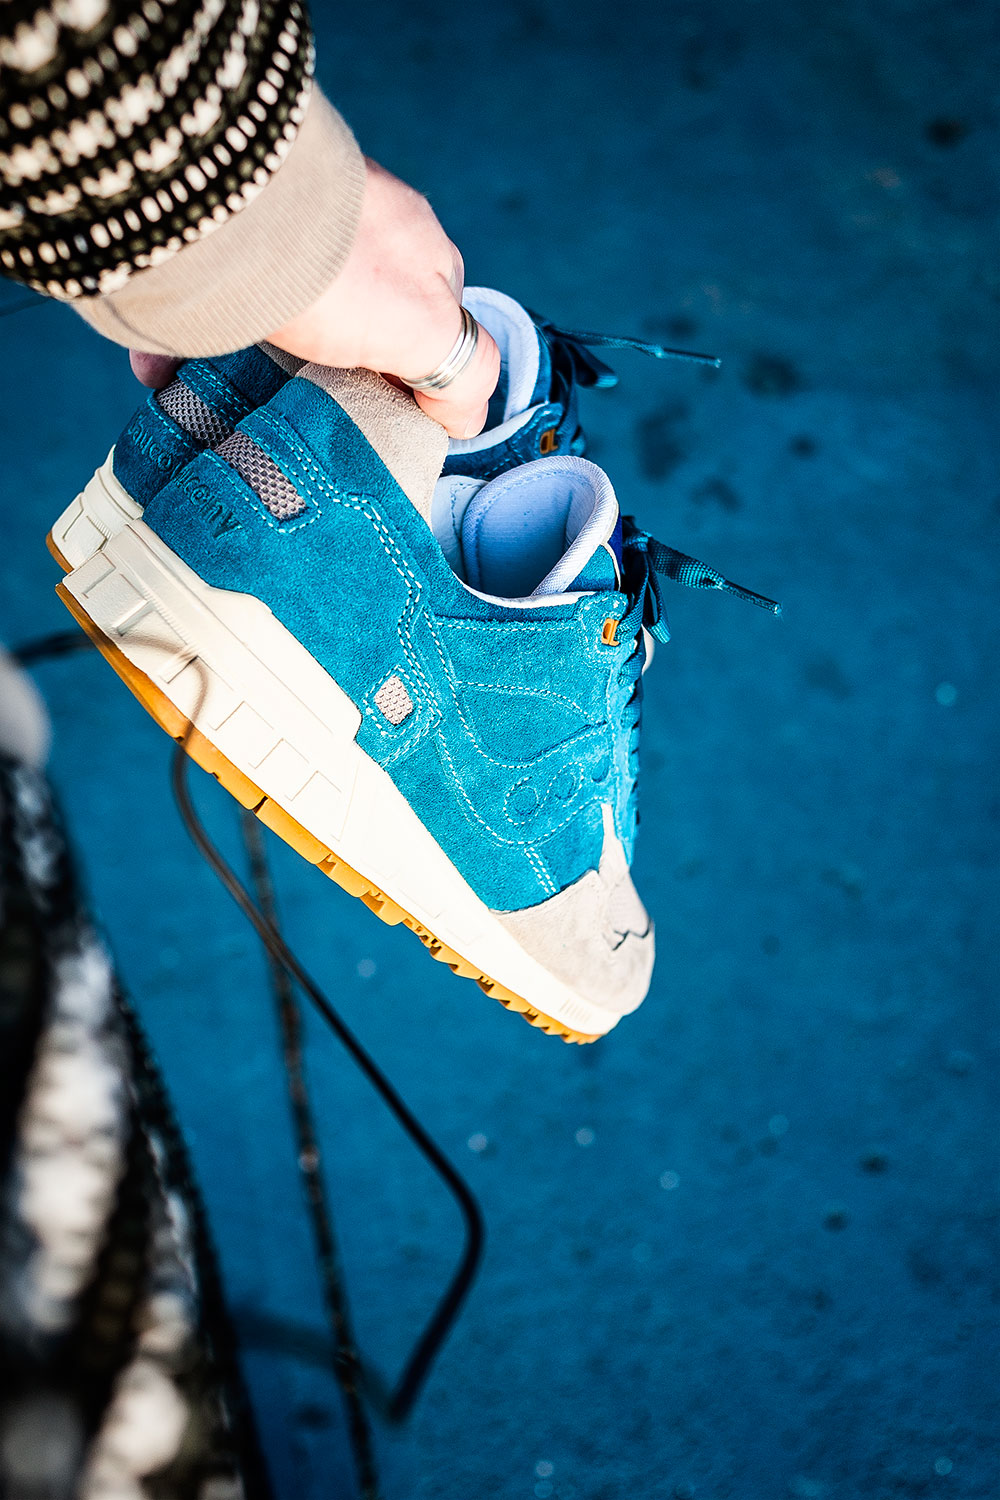 Bodega X Saucony Elite Shadow 5000 Teal/Grey Sneakers by Tom Cunningham